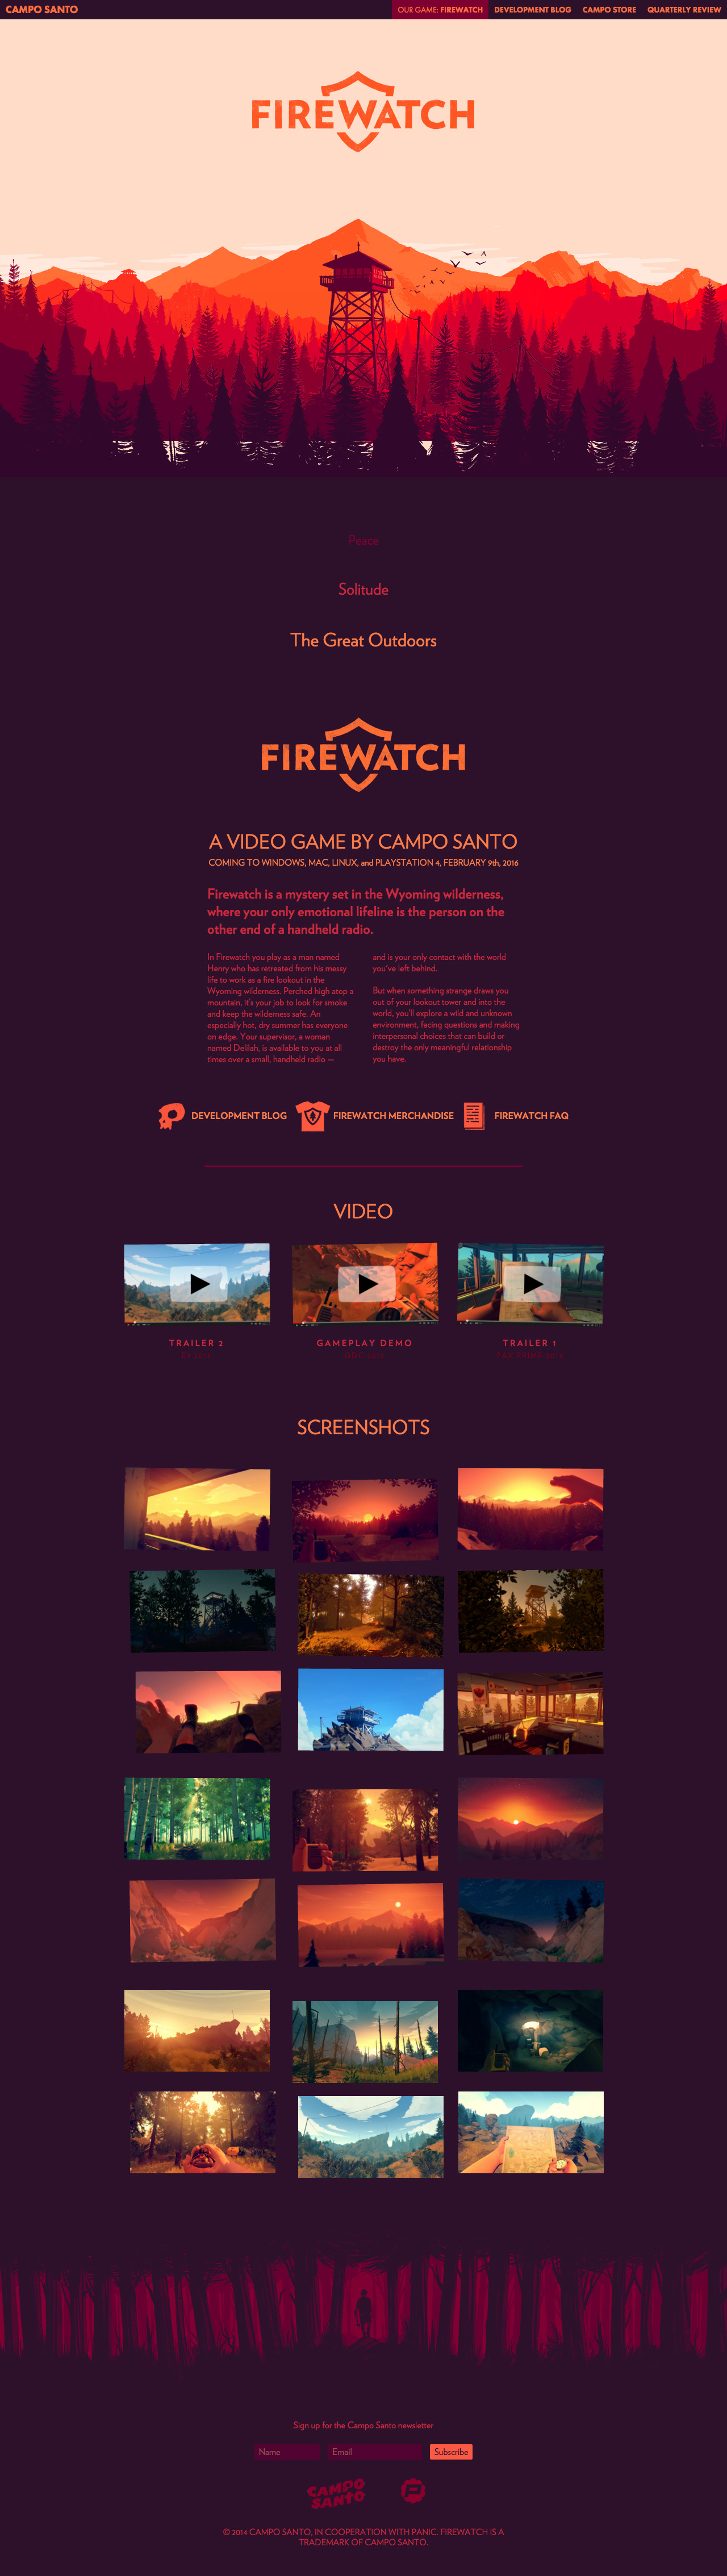 Firewatch Website Screenshot